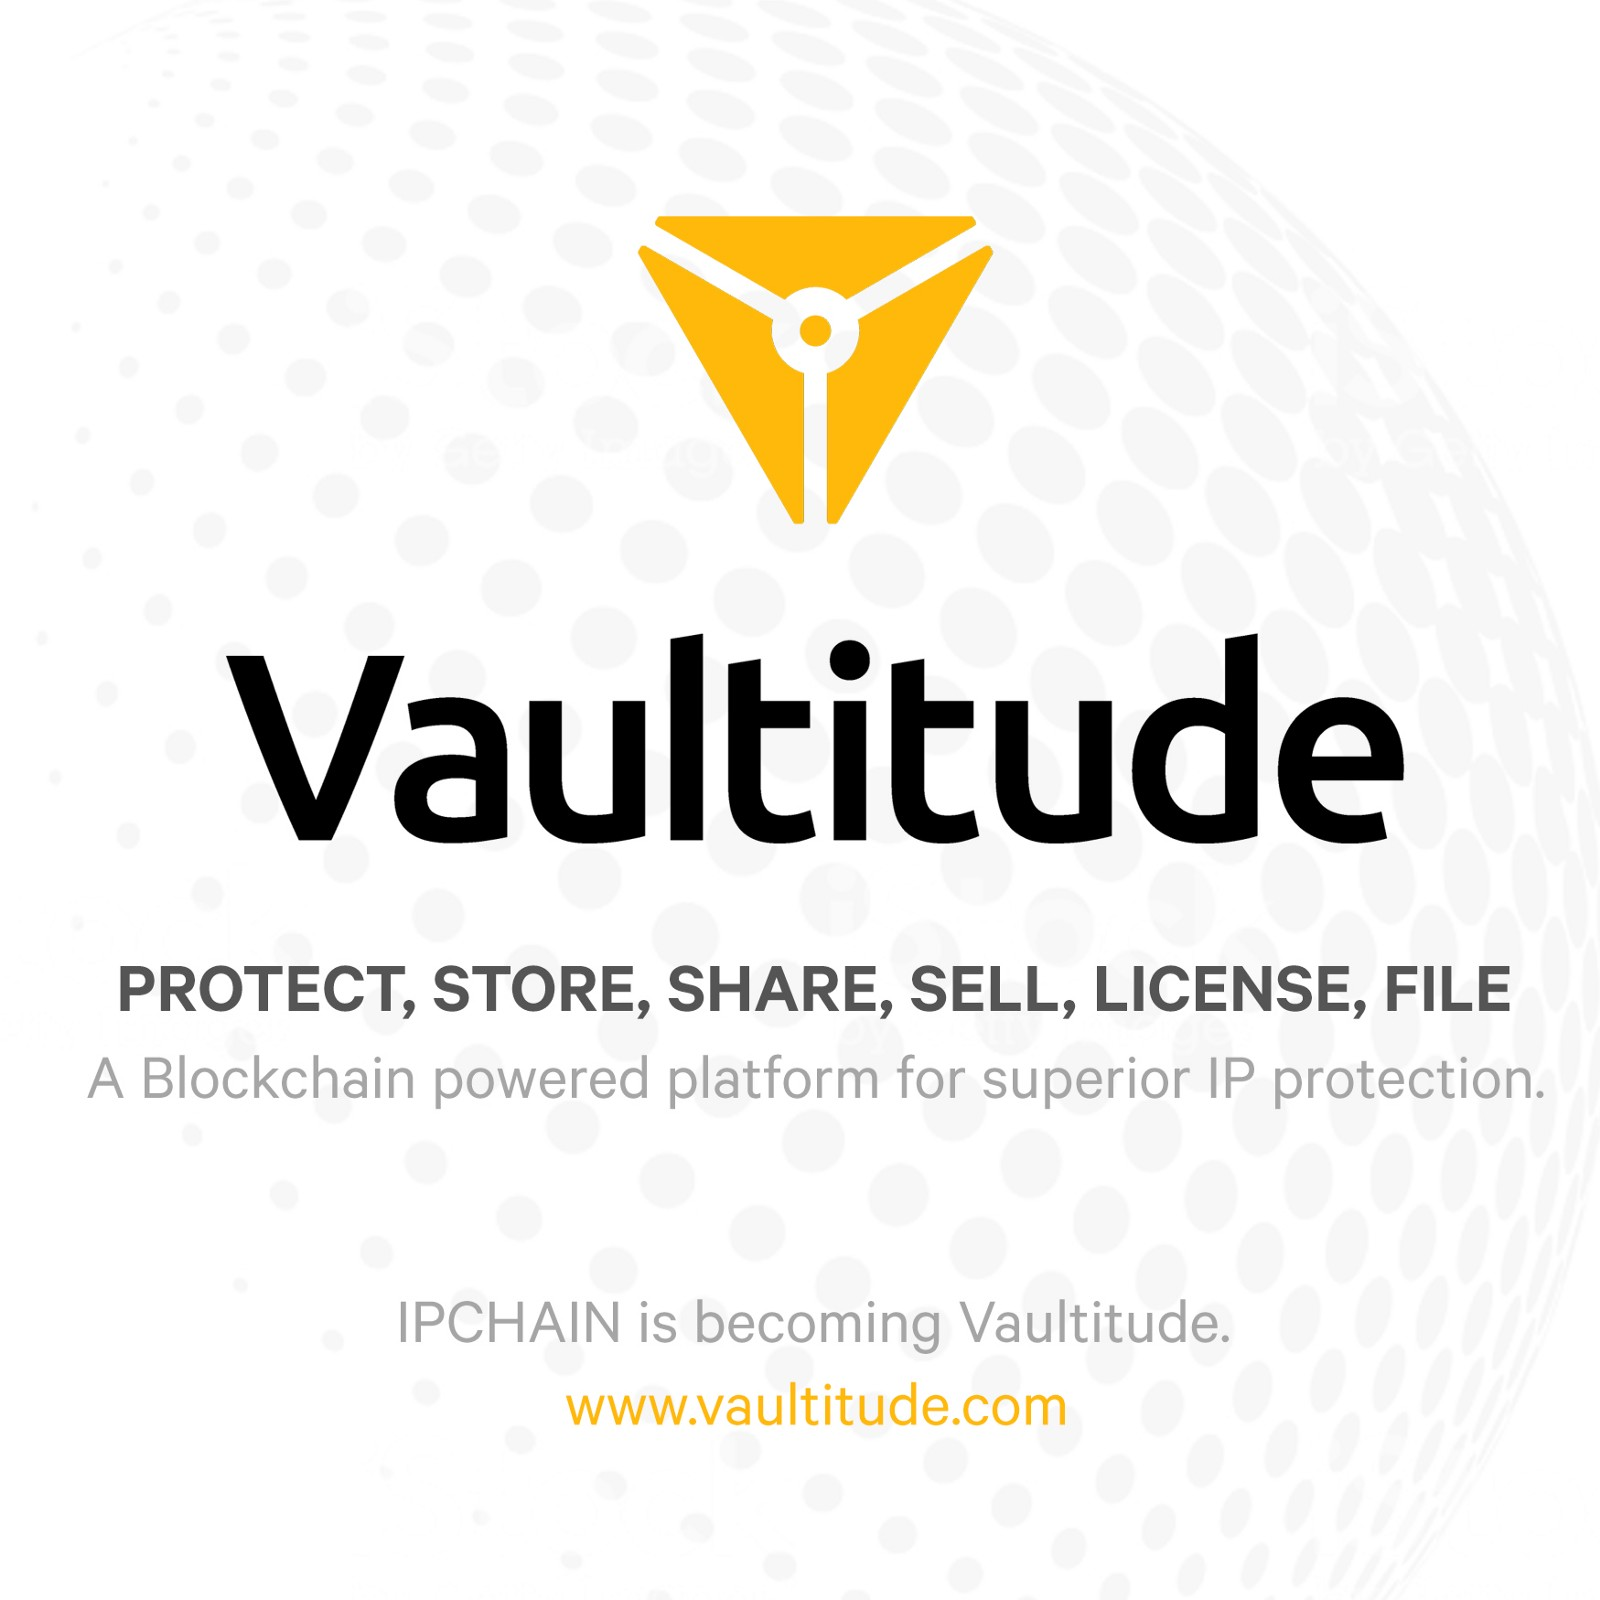 Vaultitude | Intellectual Property protection | Vaultitude blockchain | Vaultitude benefits | IPChain Database | Blockchain updates